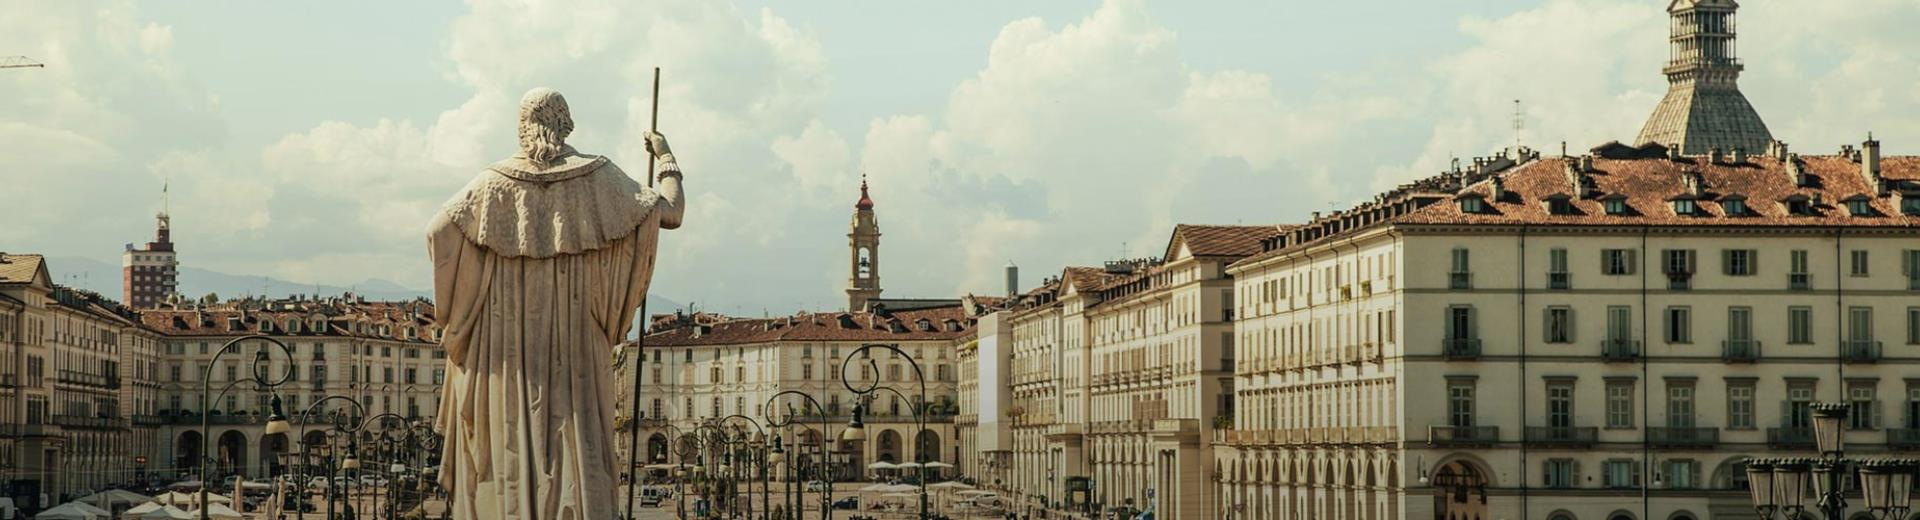 Looking for a hotel for your stay in Torino (TO)? Book/reserve at the Best Western Crystal Palace Hotel